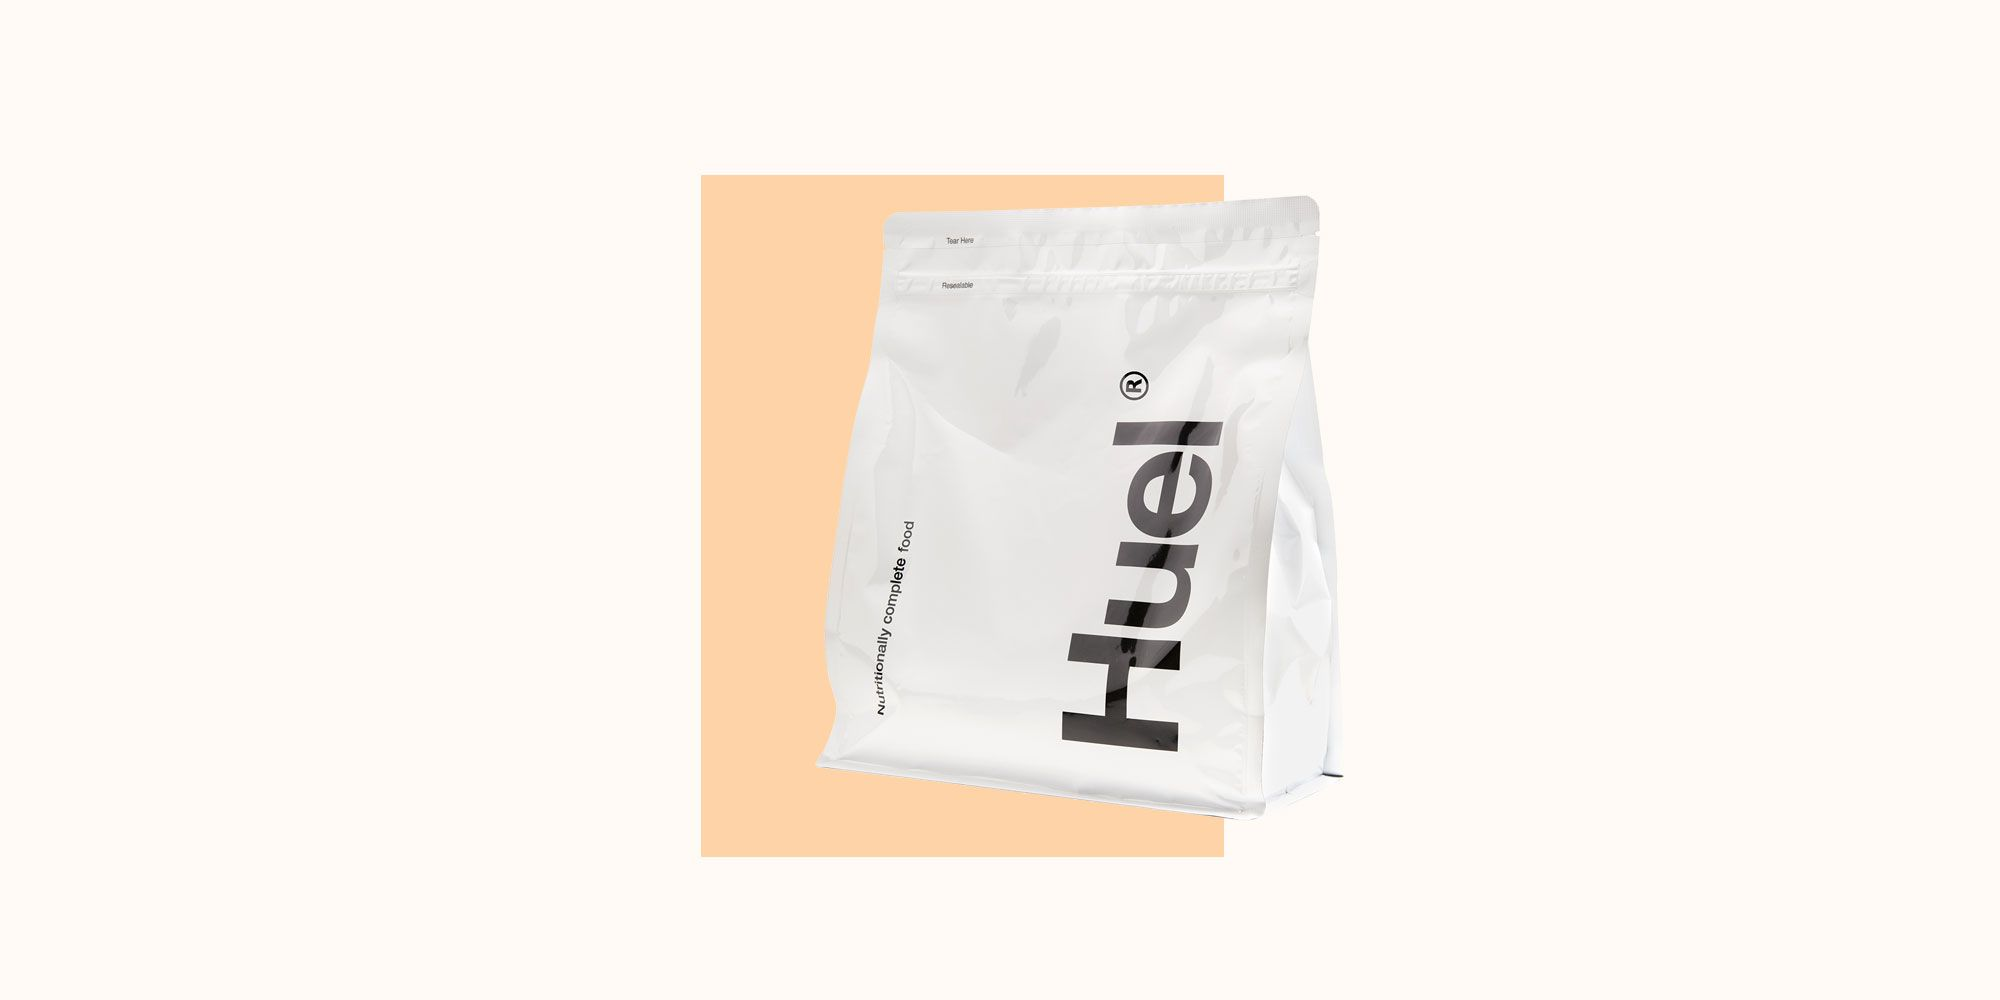 How nutritious is Huel? A dietitian shares her professional opinion